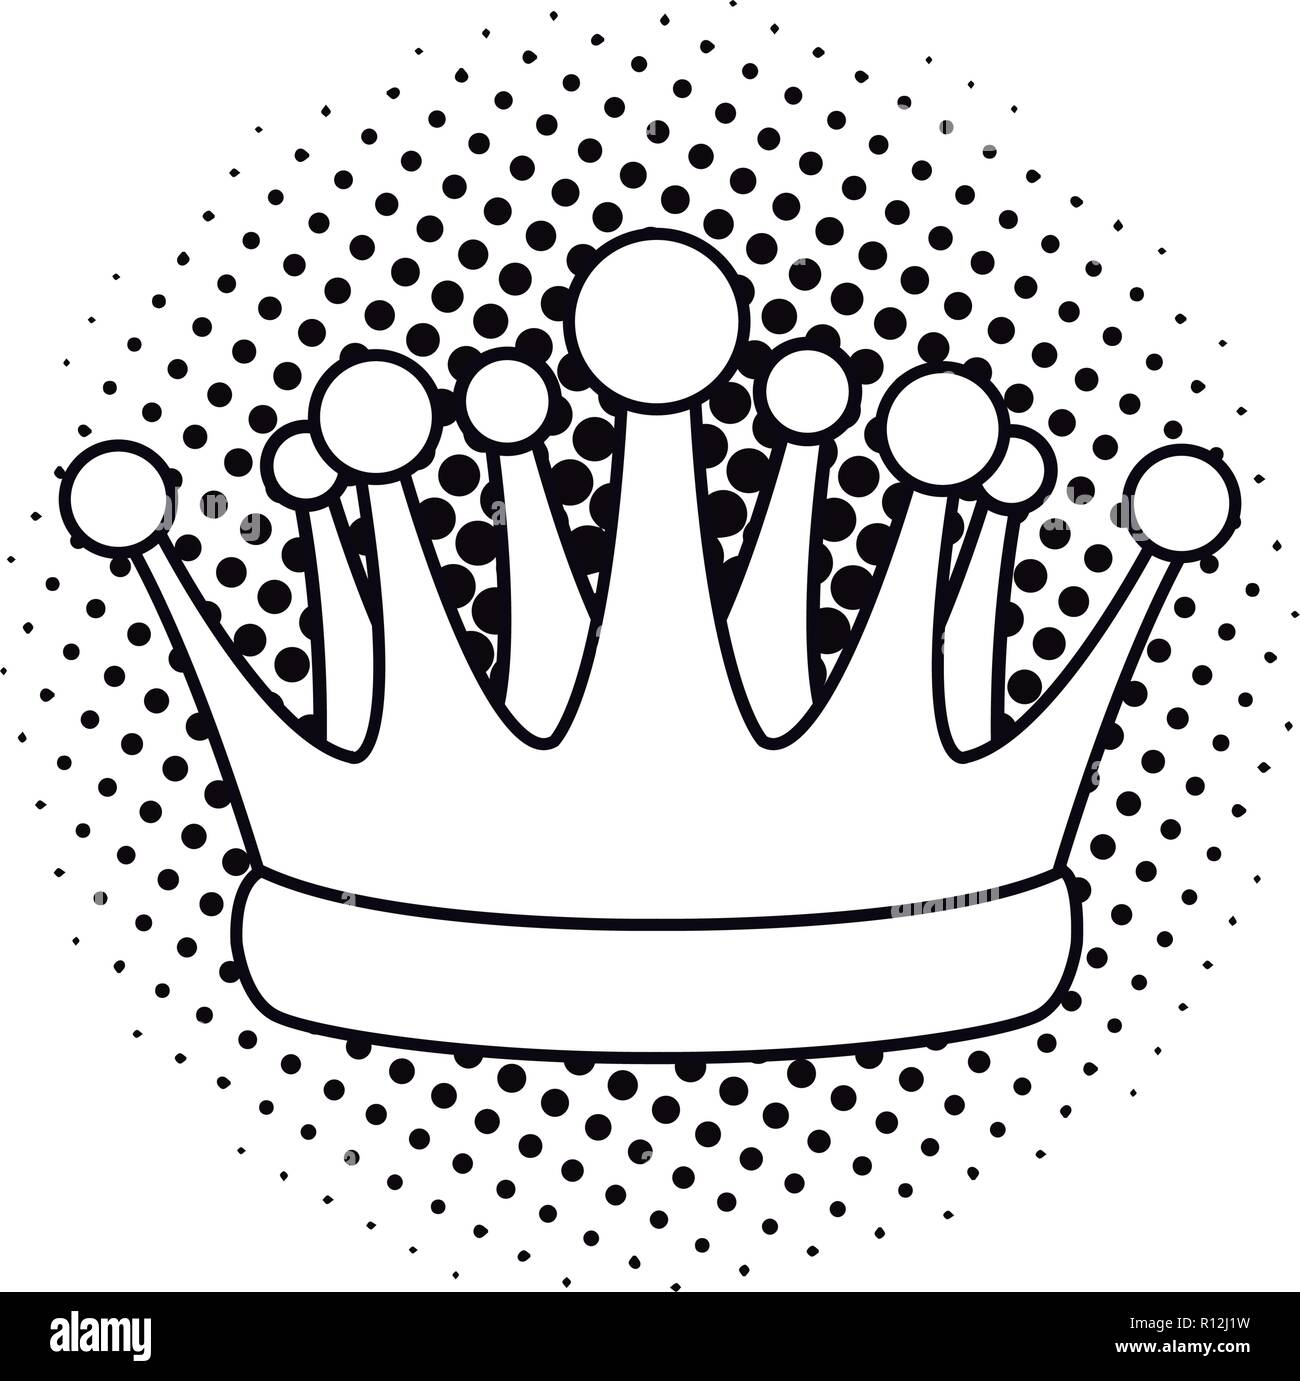 Pop Art Crown Cartoon Black And White Stock Vector Image Art Alamy Click to subscribe to my youtube here! https www alamy com pop art crown cartoon black and white image224407509 html